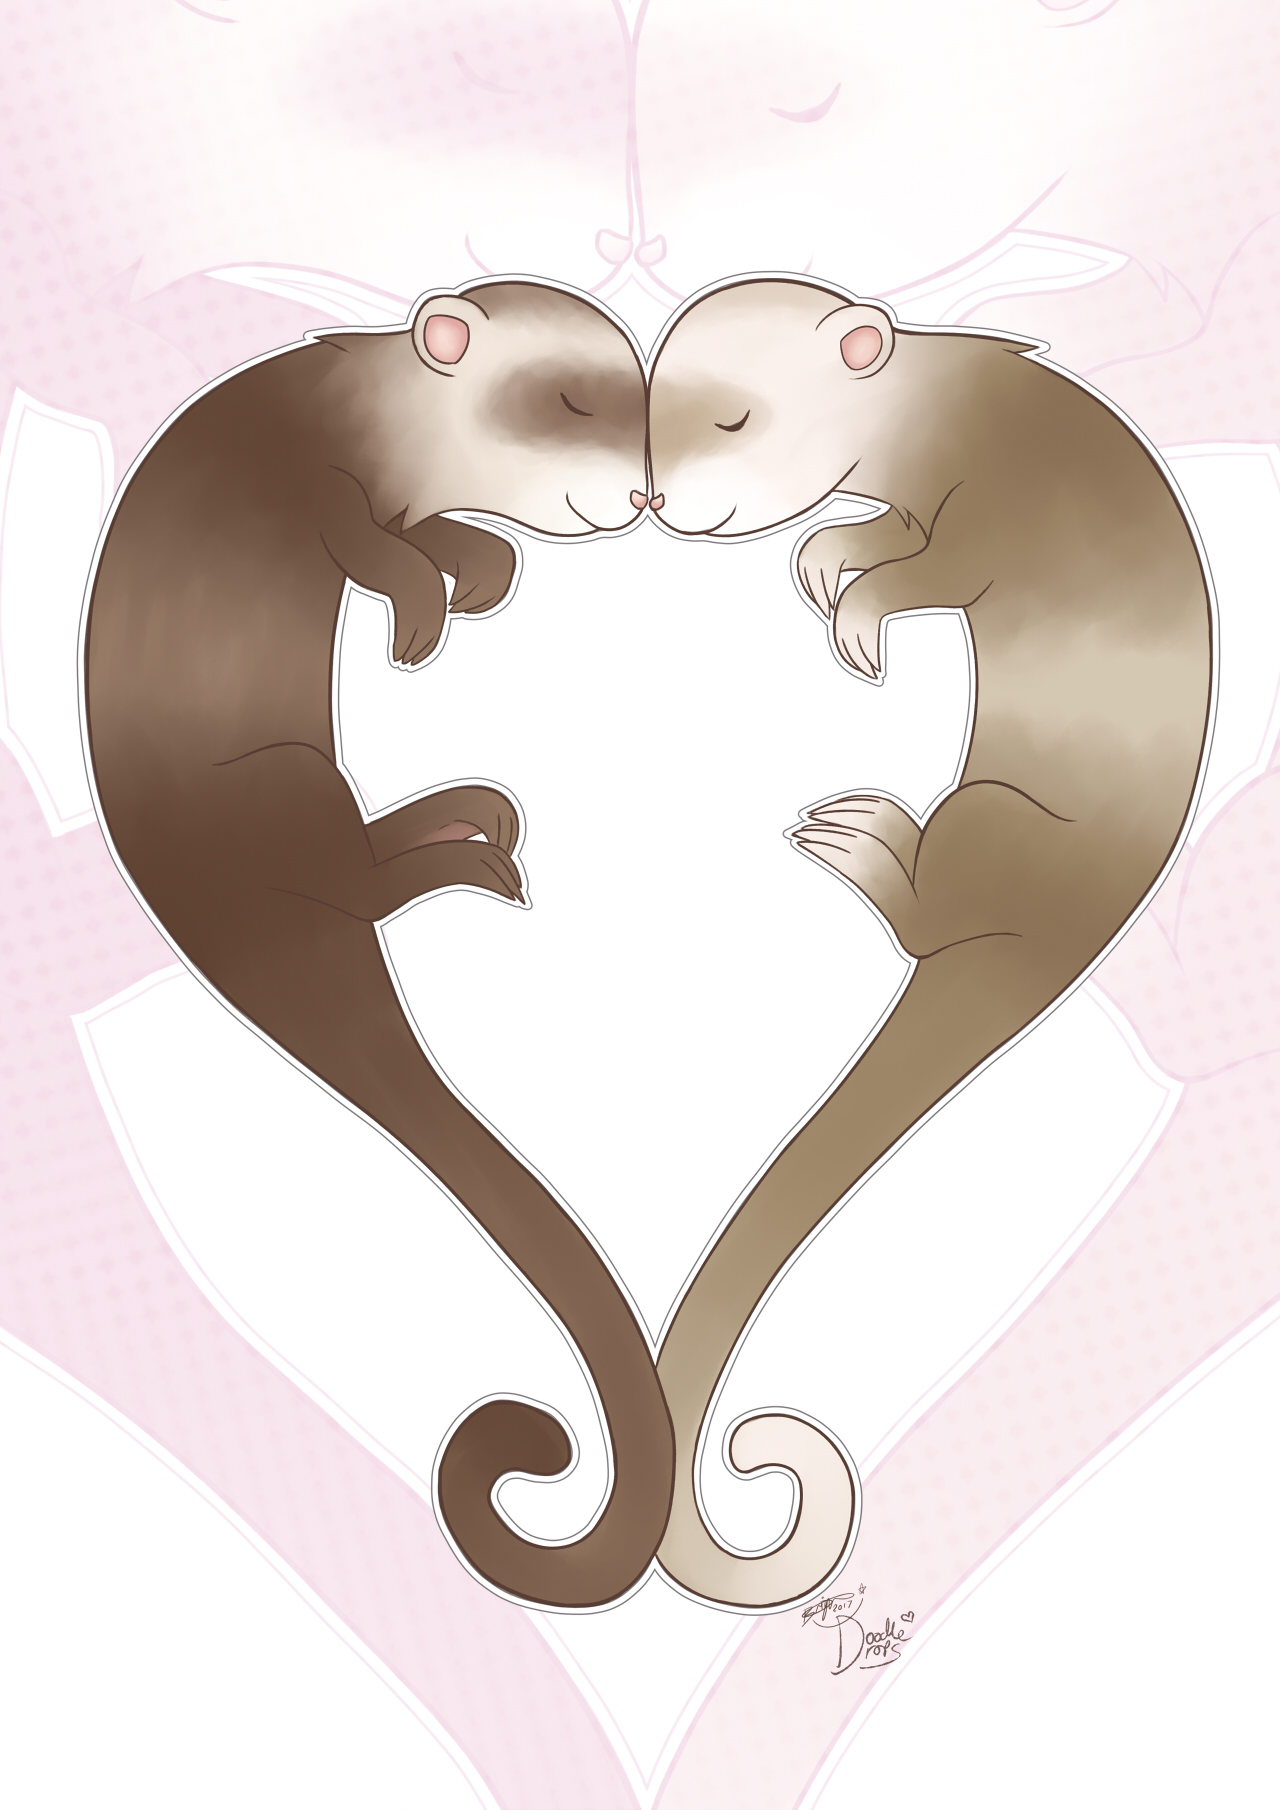 Heart Ferrets by pdutogepi